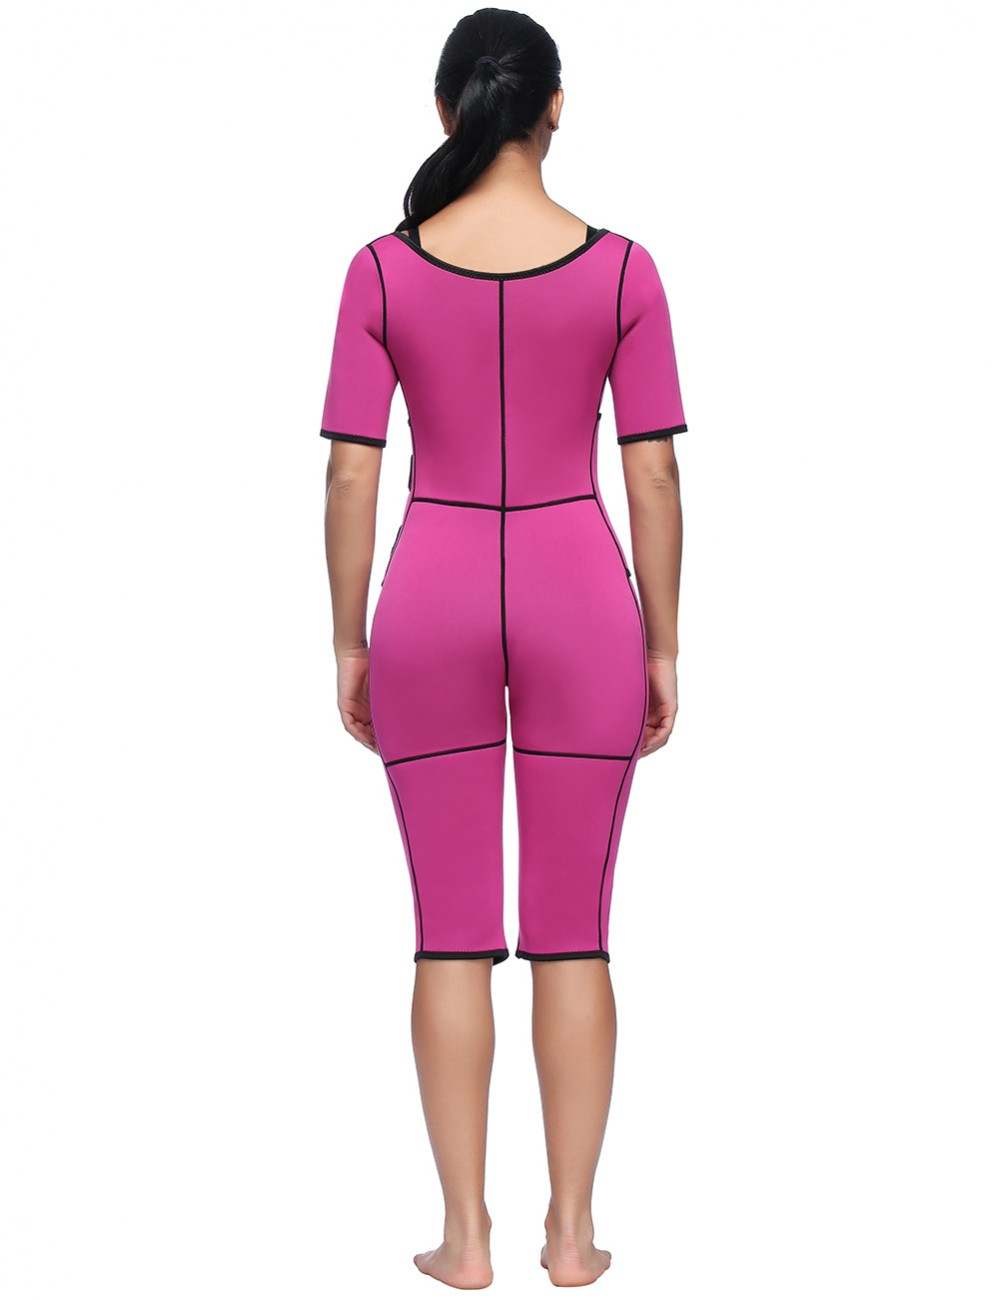 Power Conceal Rose Red Full Body Shaper Short Sleeve Potential Reduction